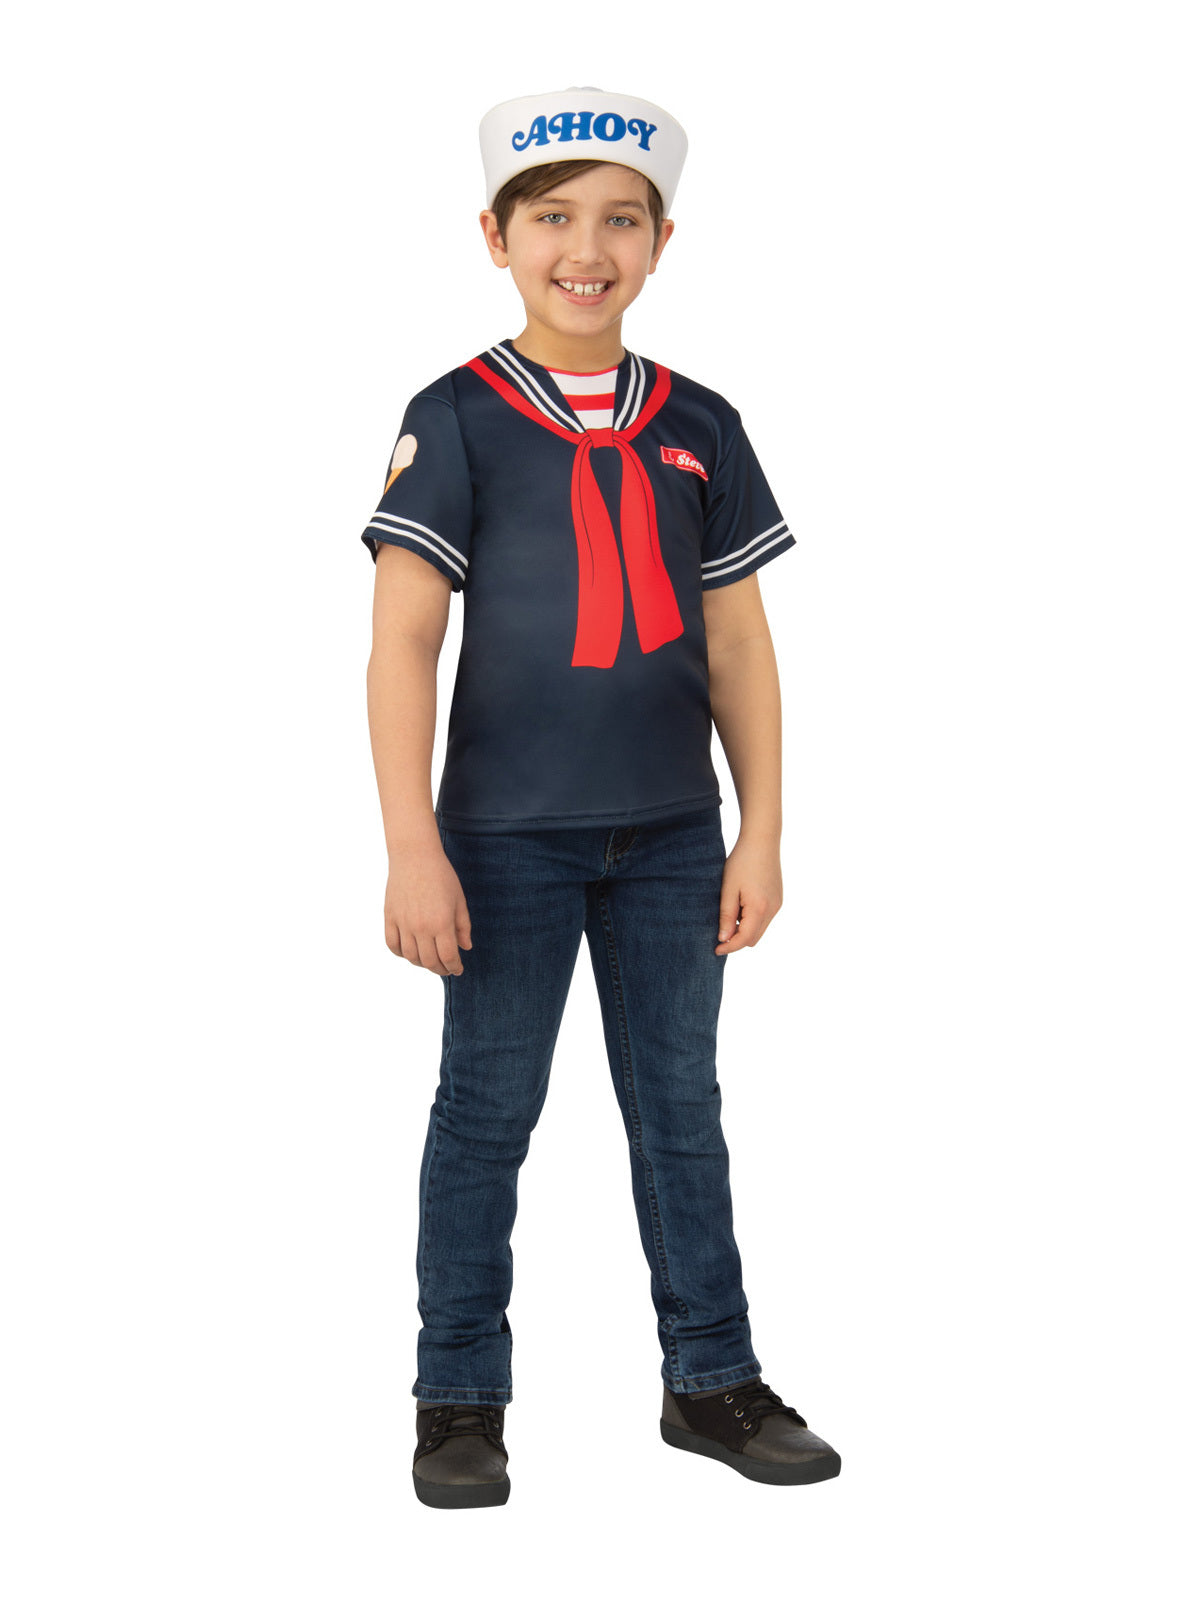 Steve Scoops Ahoy Stranger Things Child Top - Buy Online Only